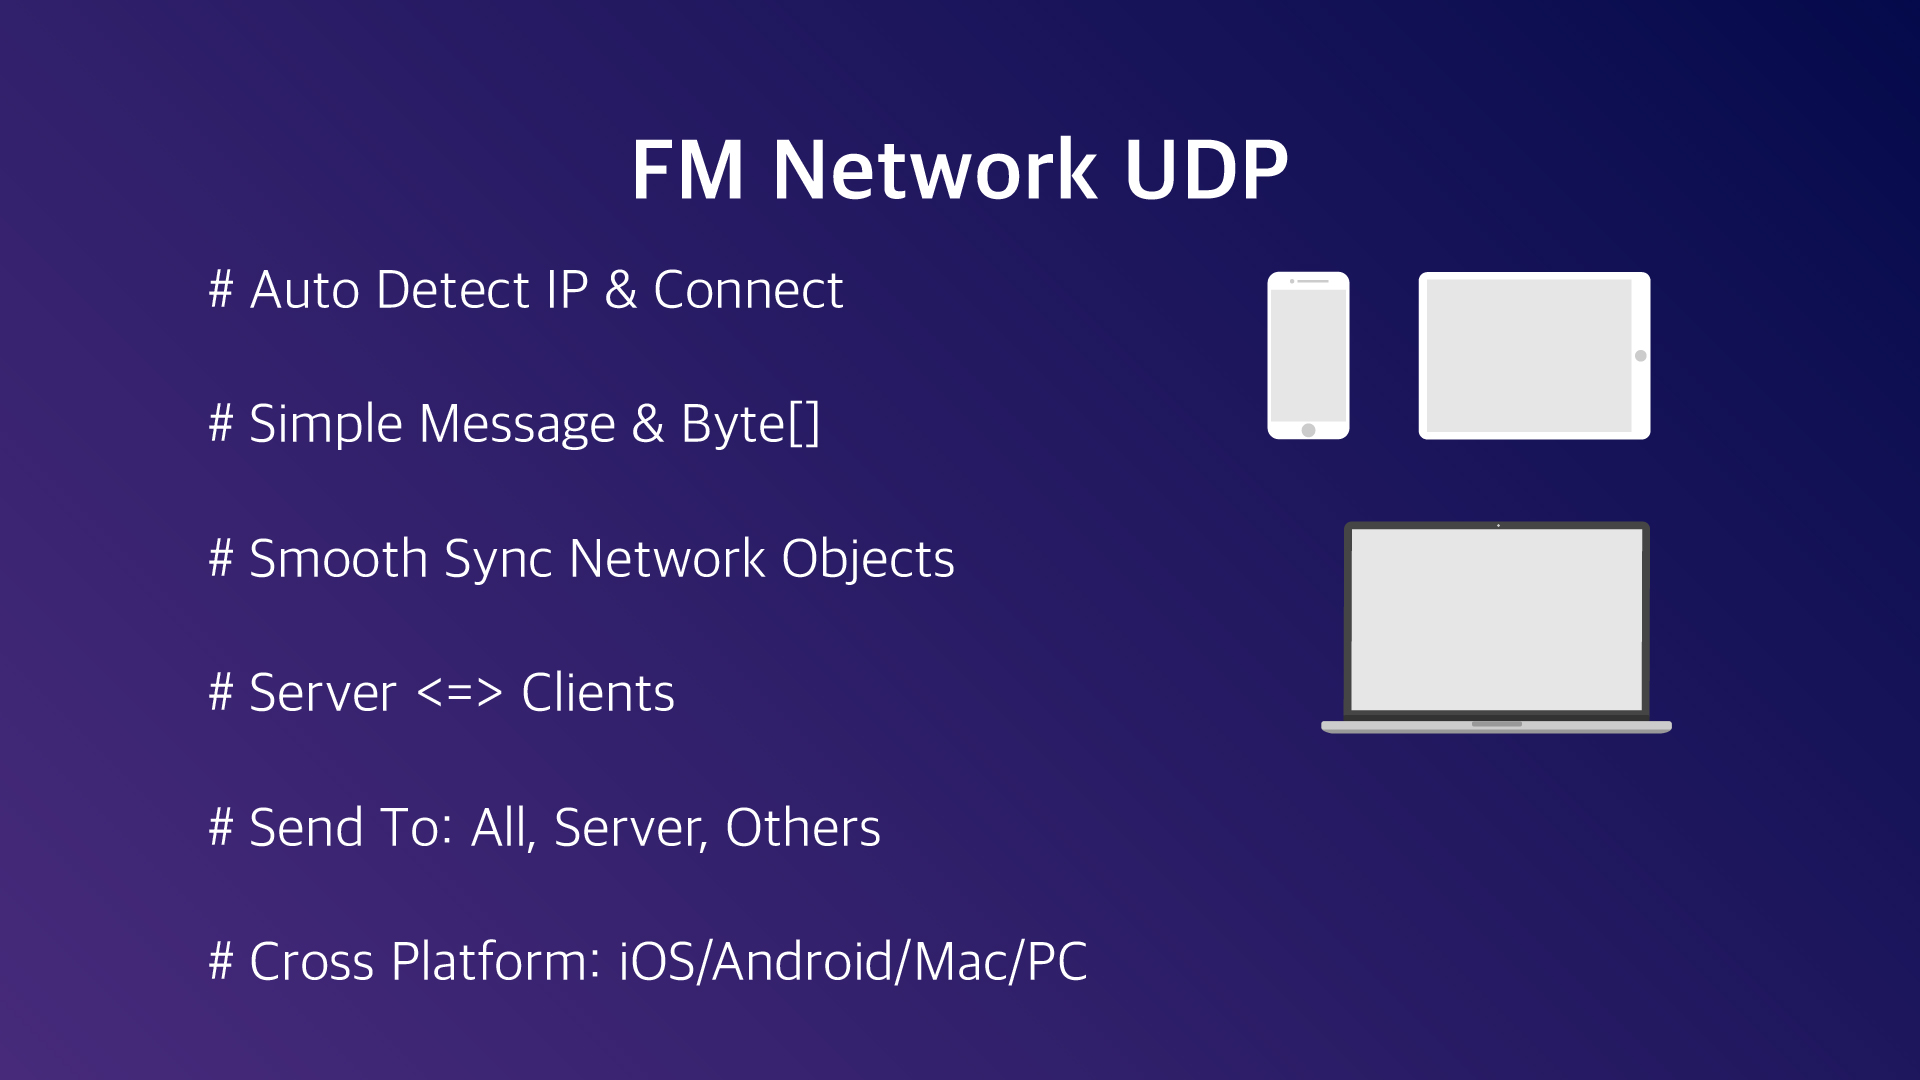 Release] FM ExhibitionToolPack - [New in v1 09] Cross